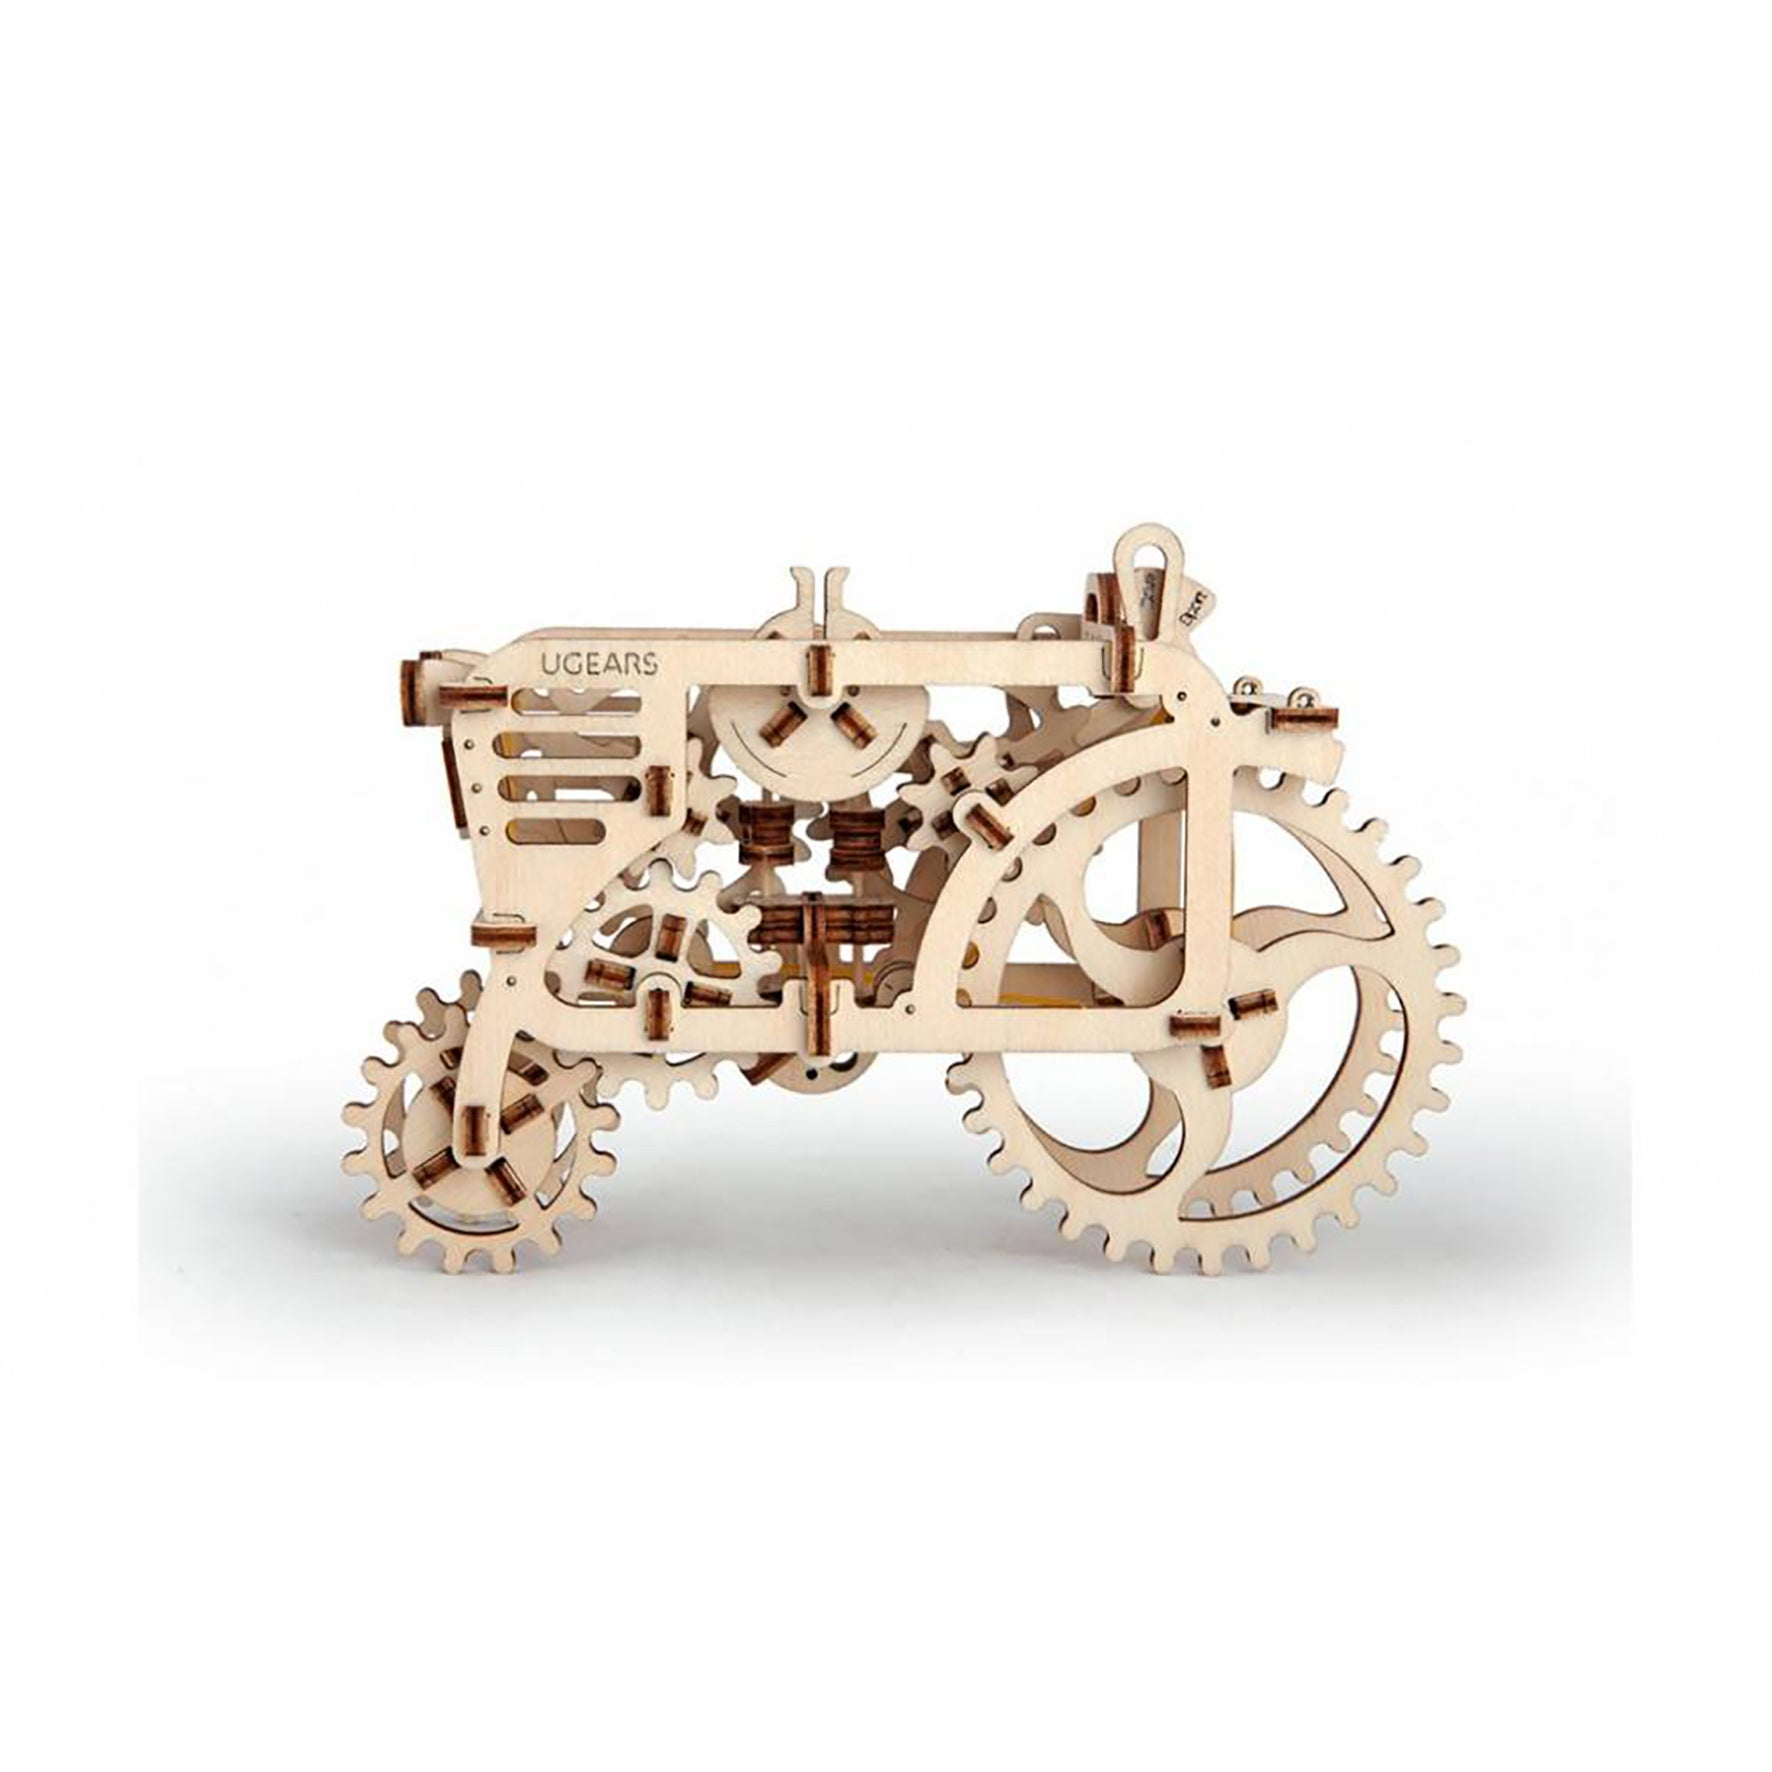 Puzzle 3D madera Ugears  - Tractor